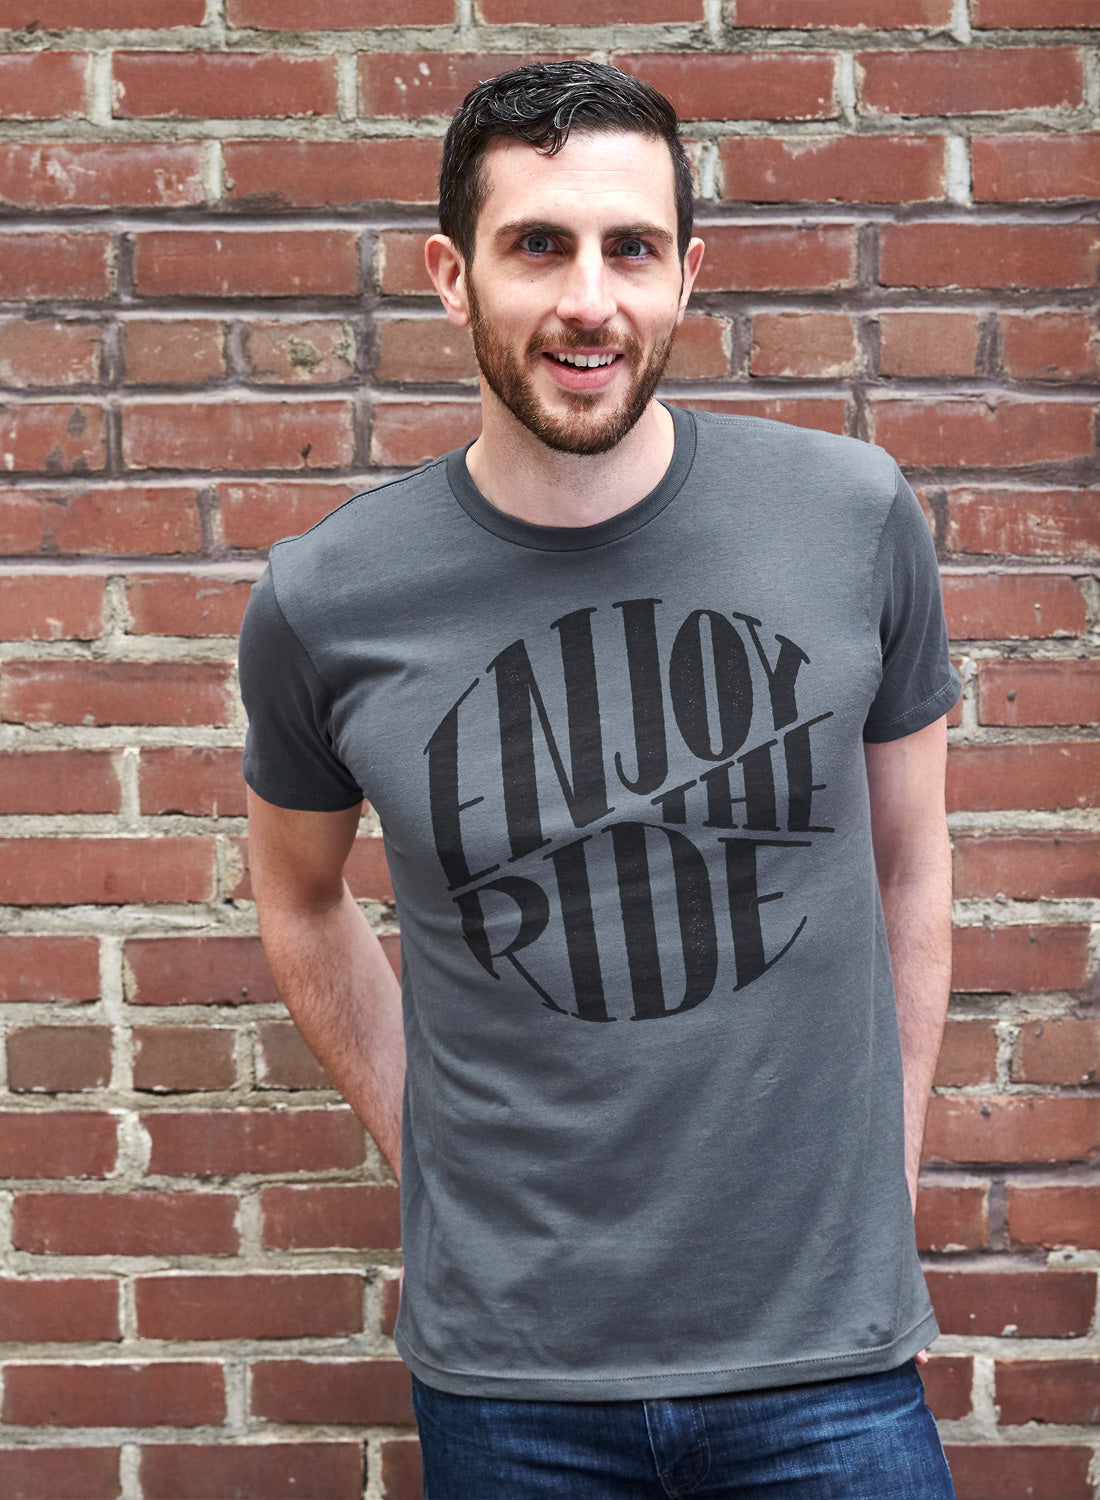 Enjoy the Ride - Minimal t-shirt design by Design Different